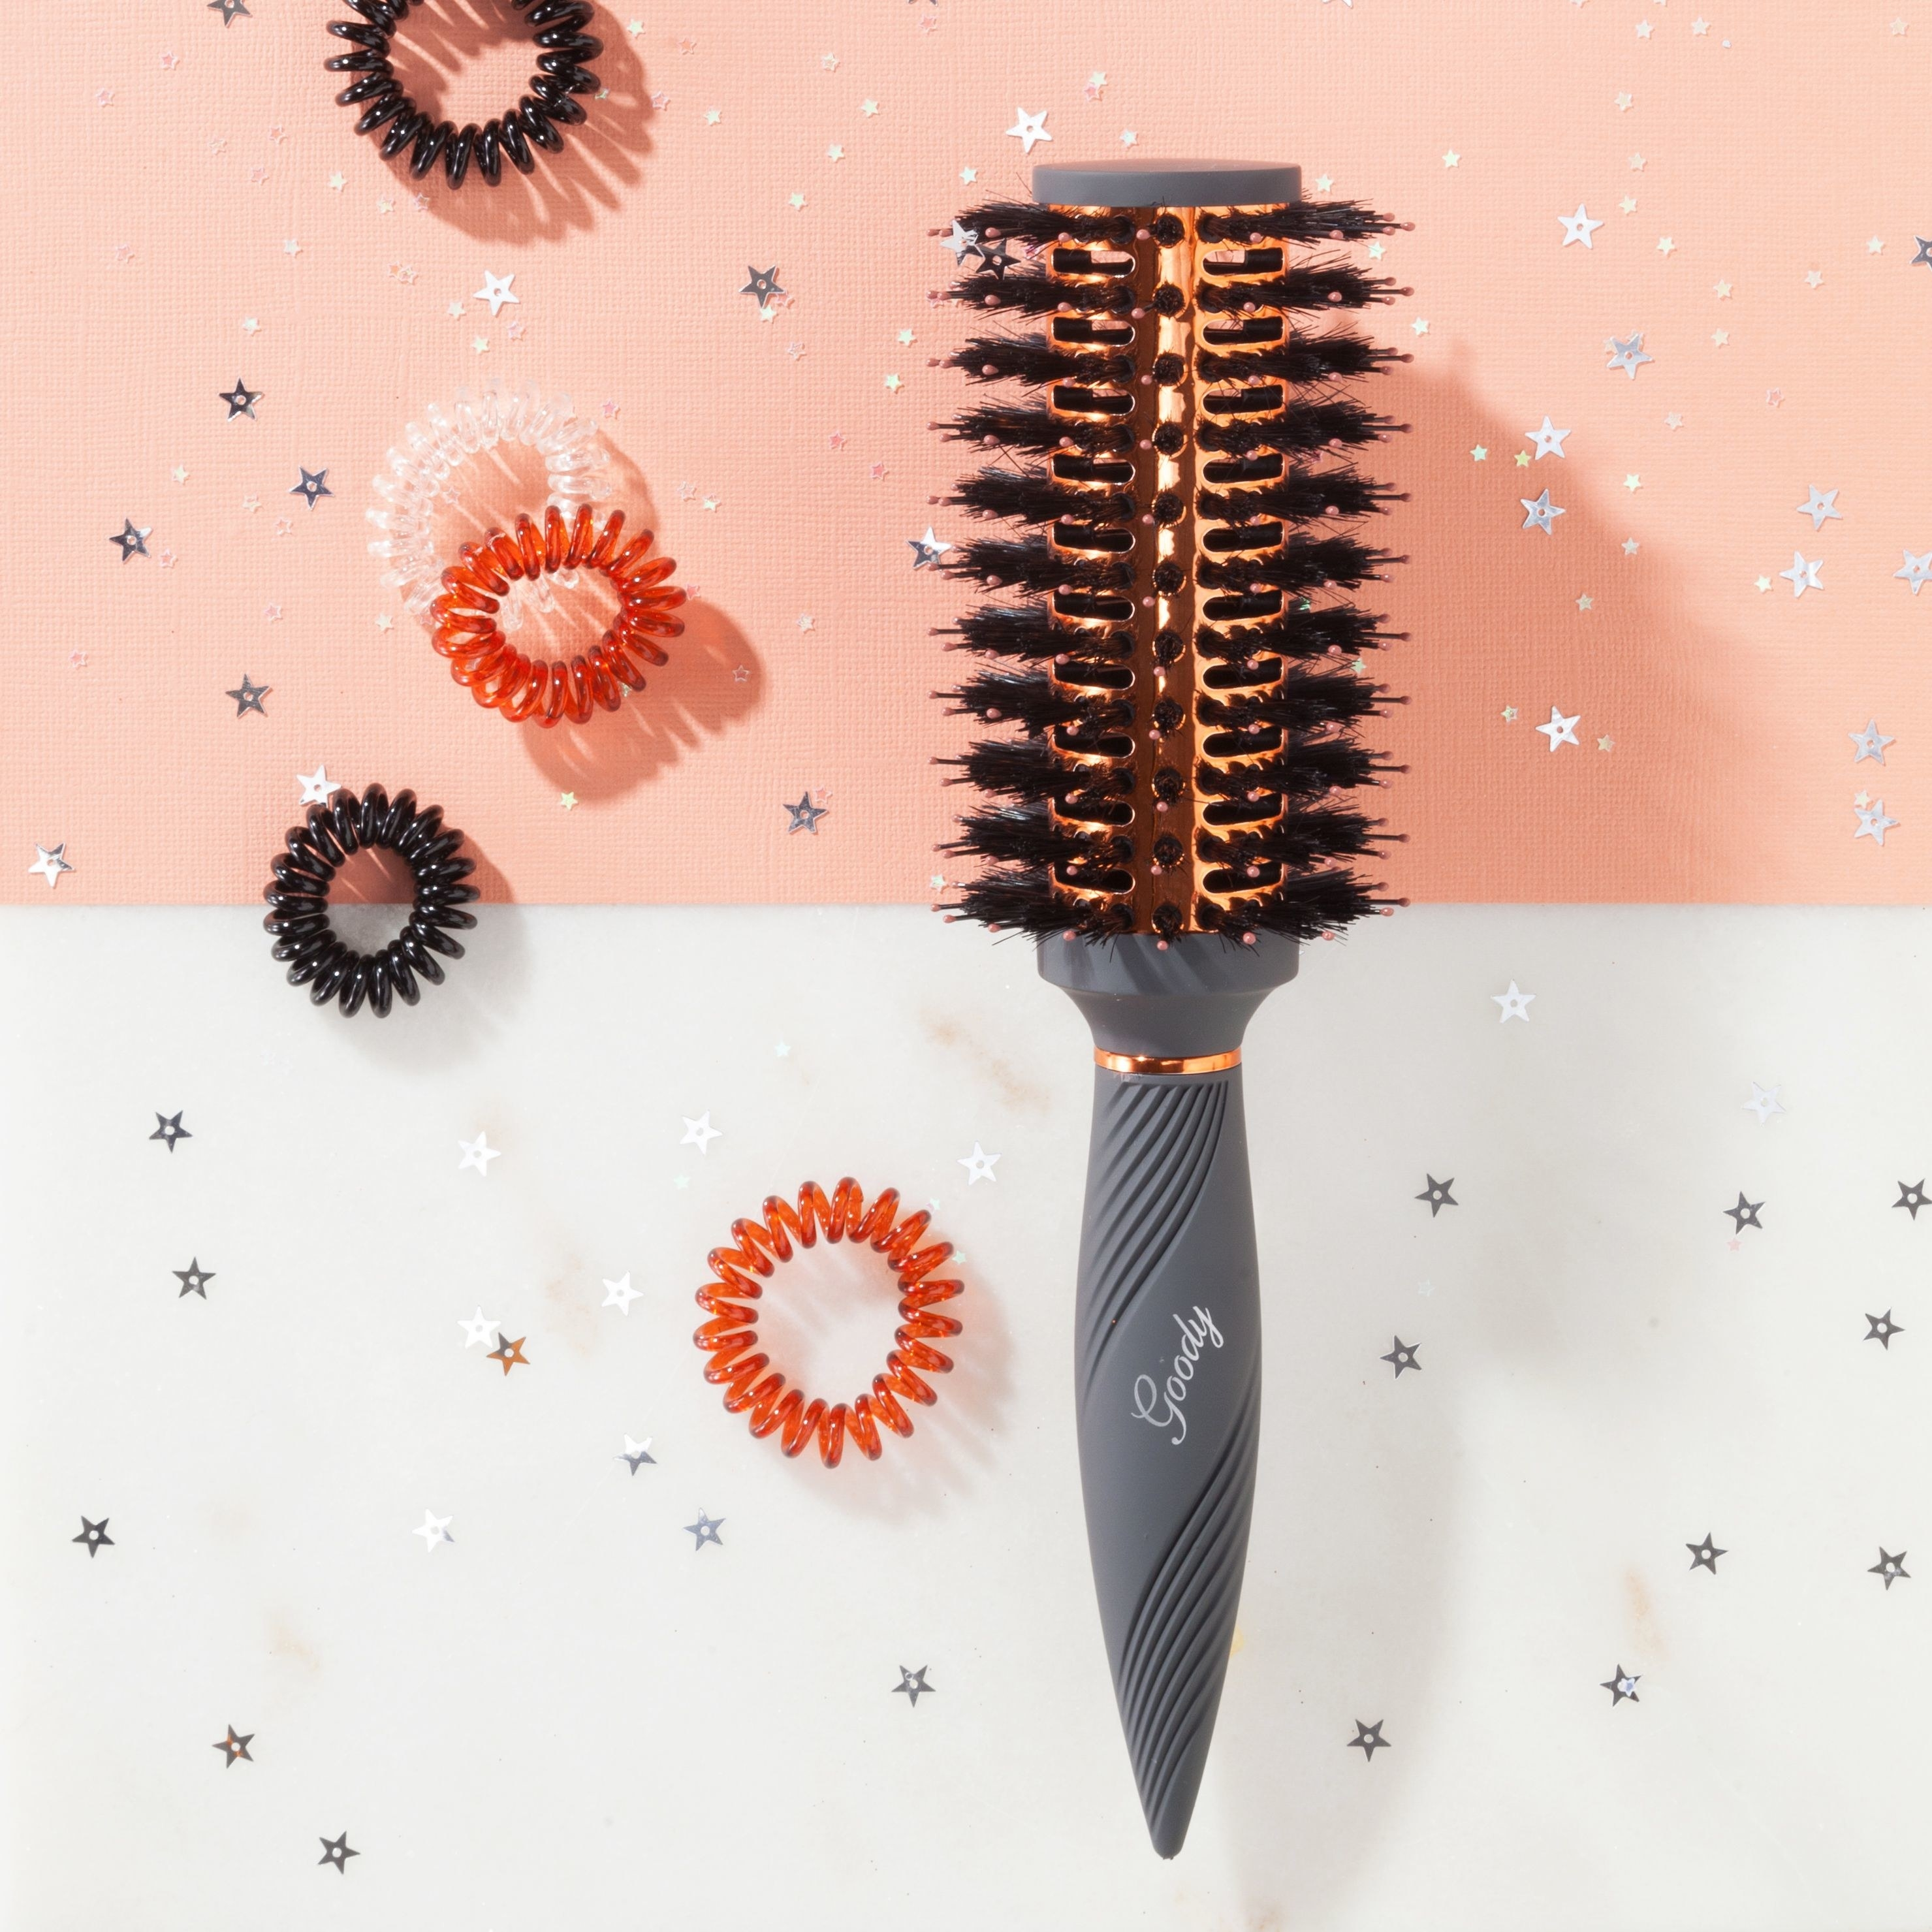 The gray and rose gold brush